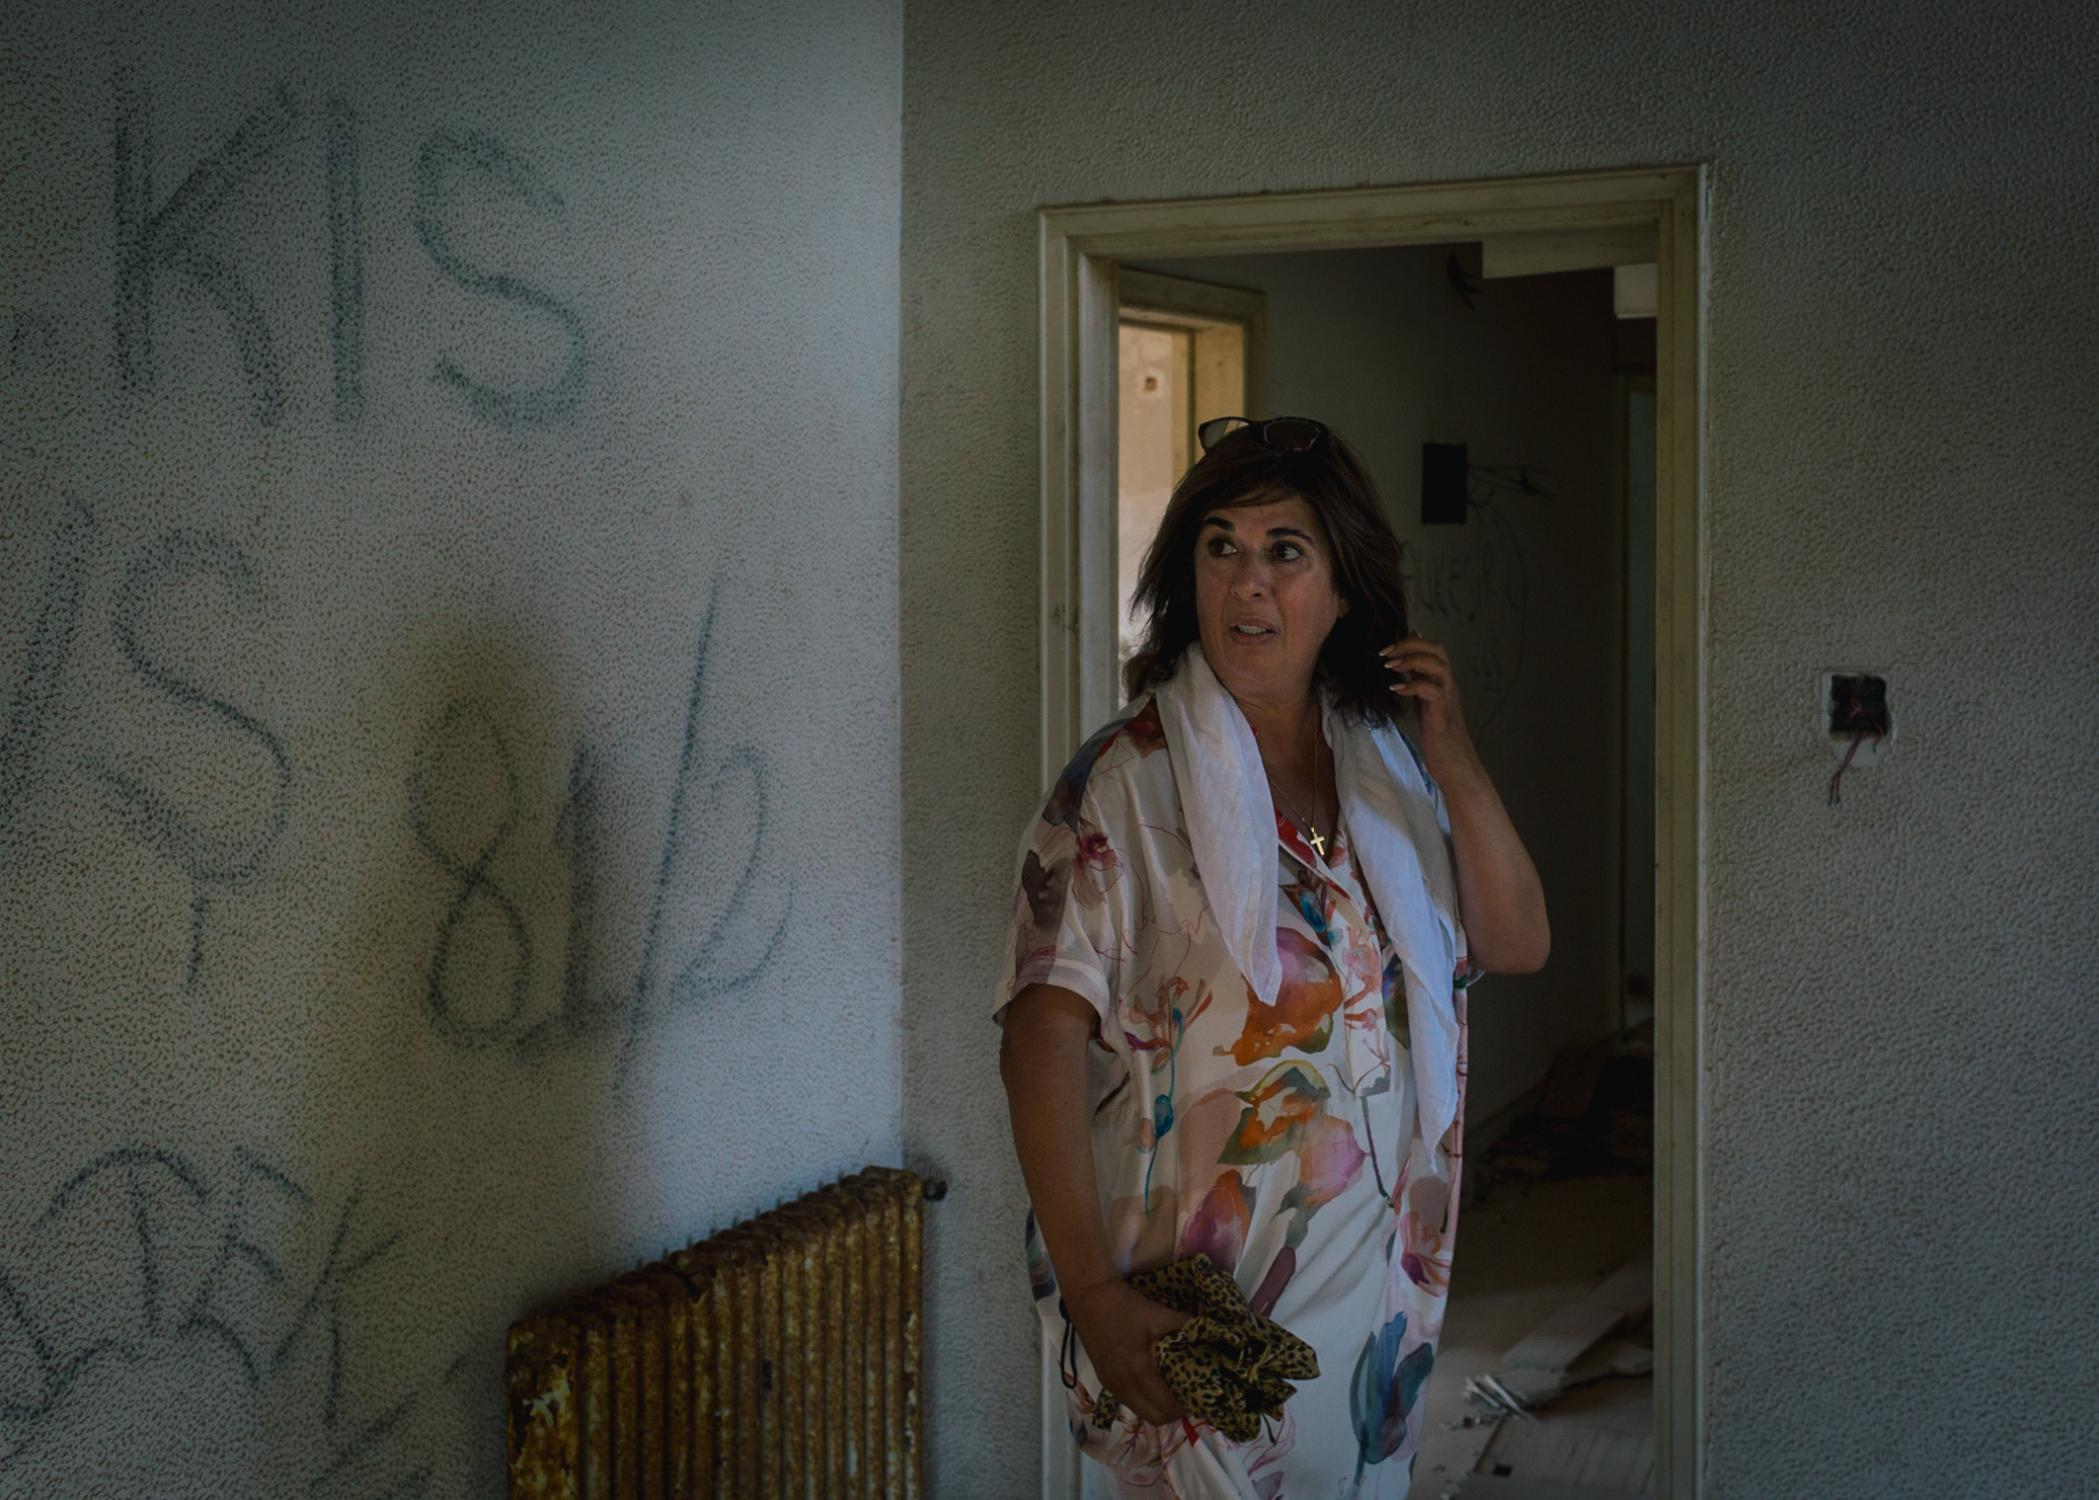 Tasoula Hadjitofi in an abandoned building in ghost town Varosia, searching for her home from which she fled as a 15-year-old girl in 1974.